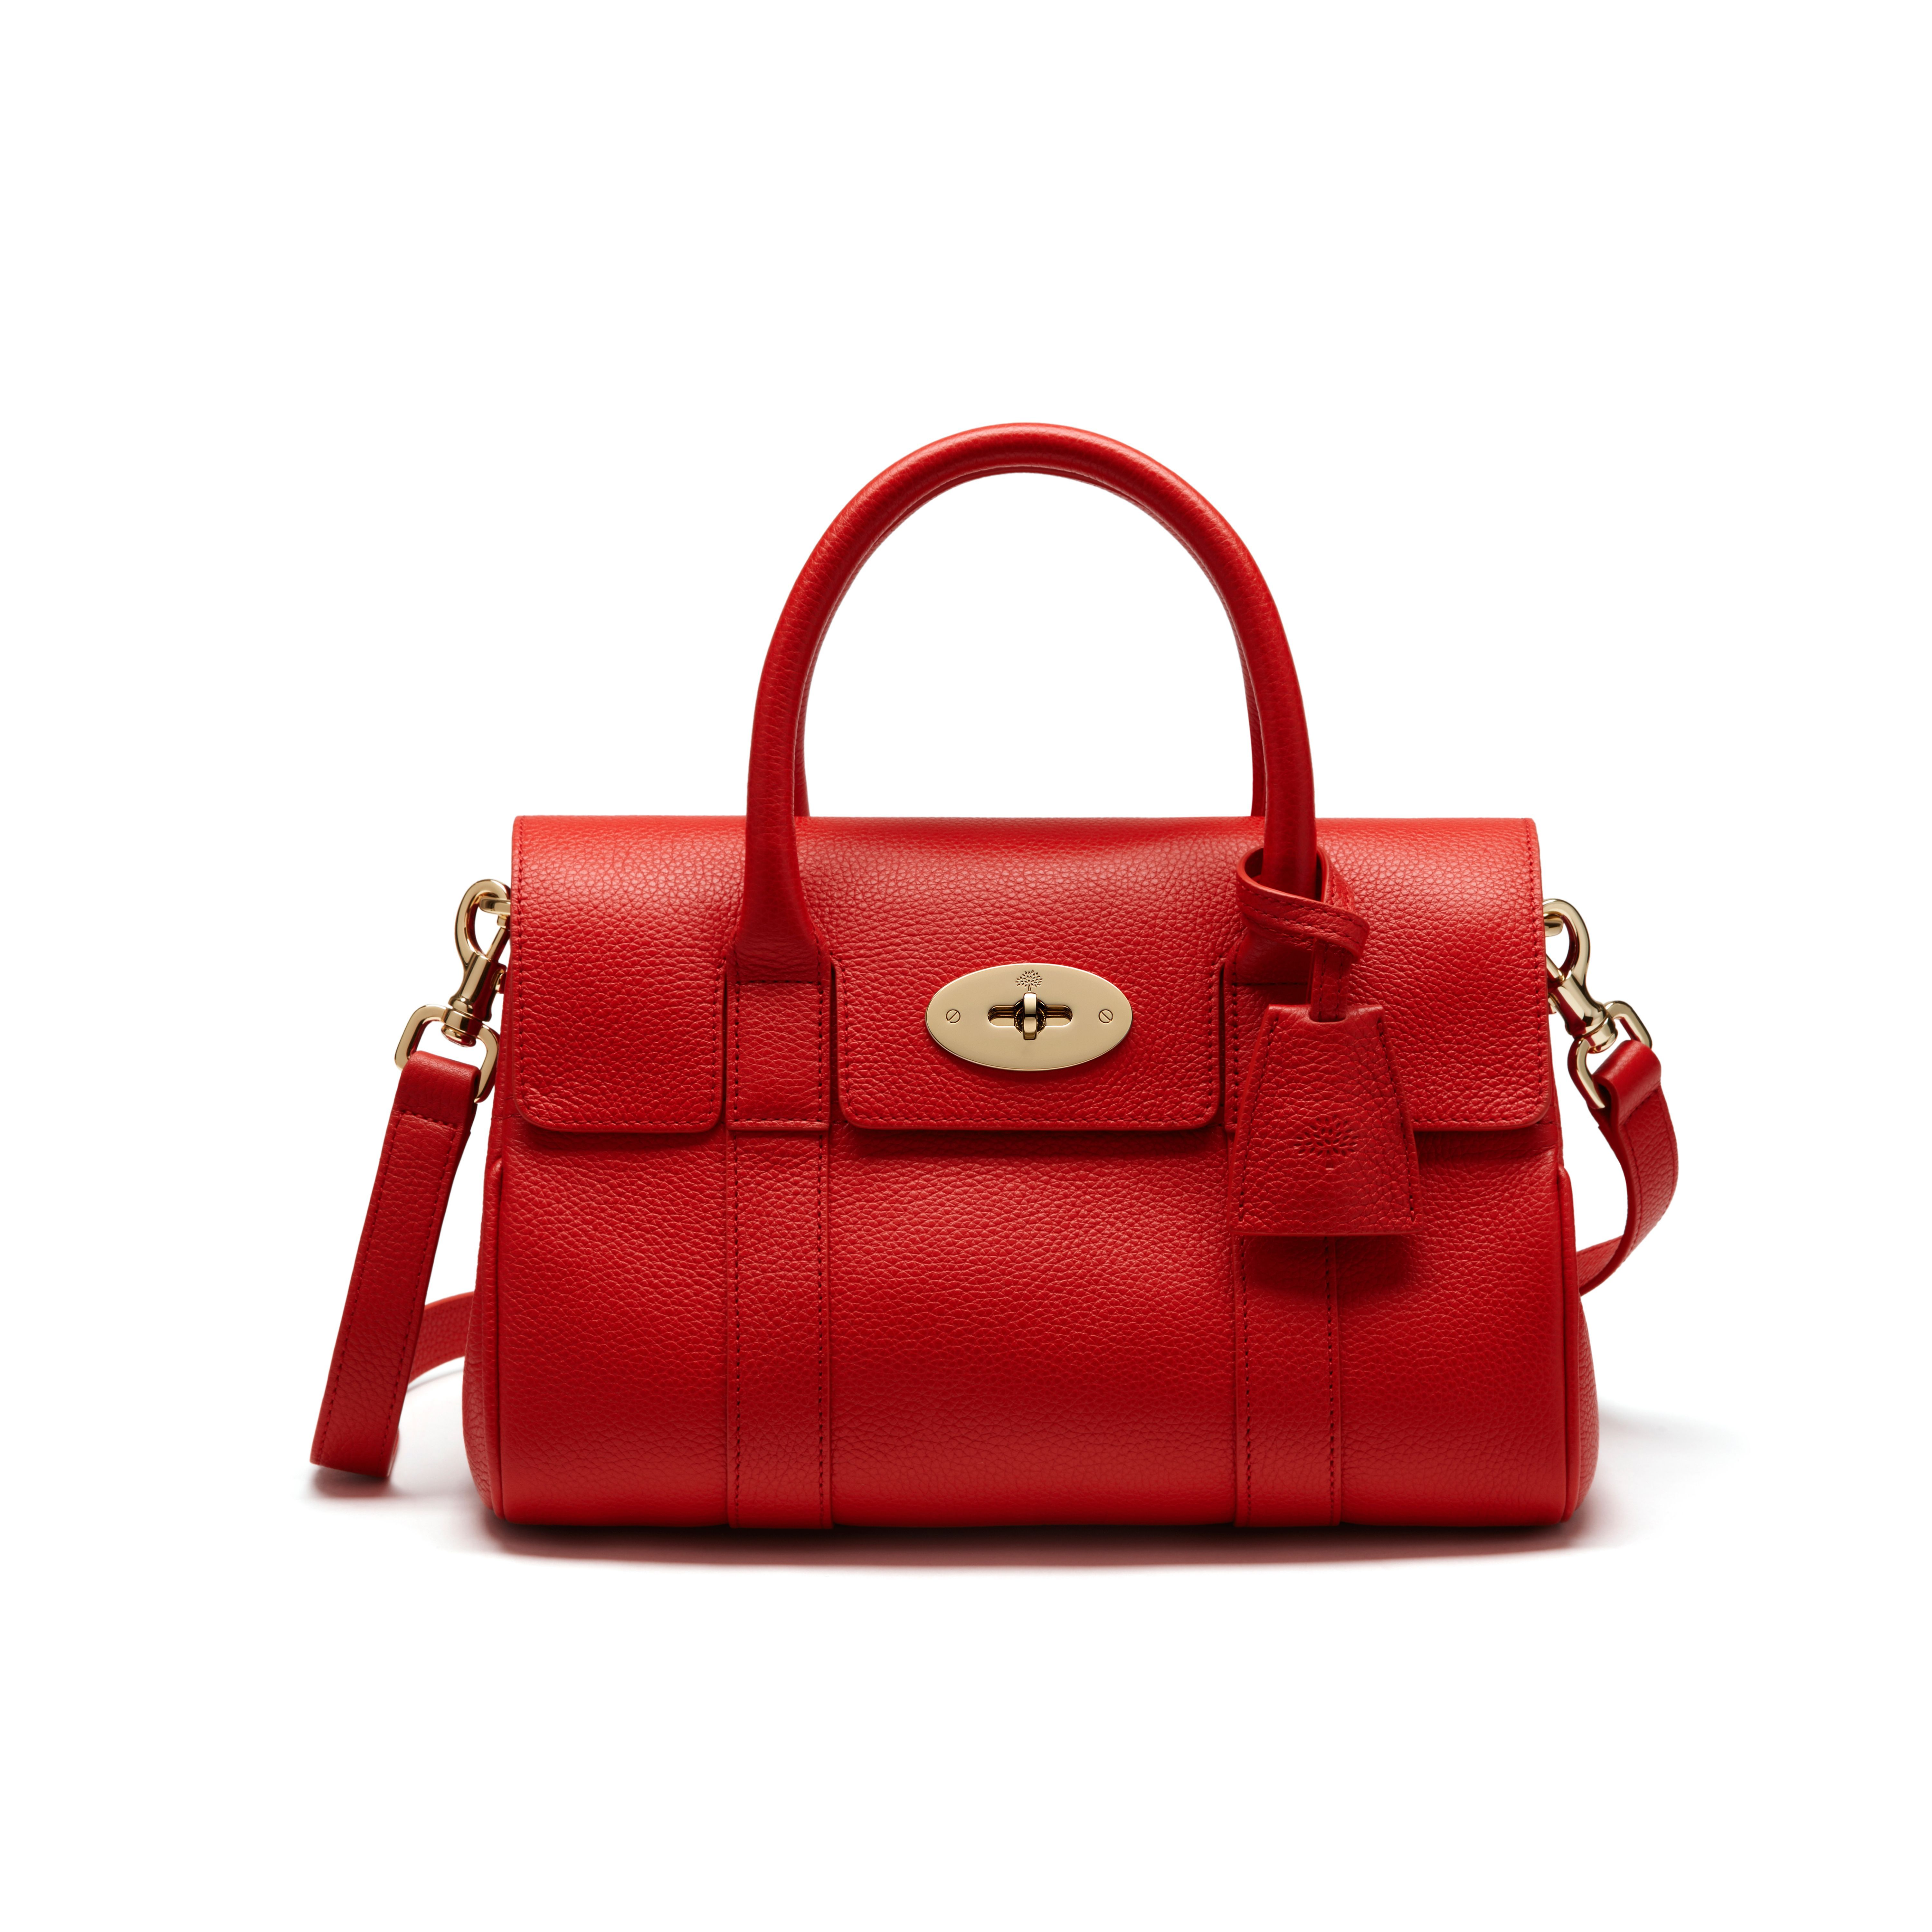 31f351f859 Mulberry - Small Bayswater Satchel in Fiery Spritz Small Classic Grain